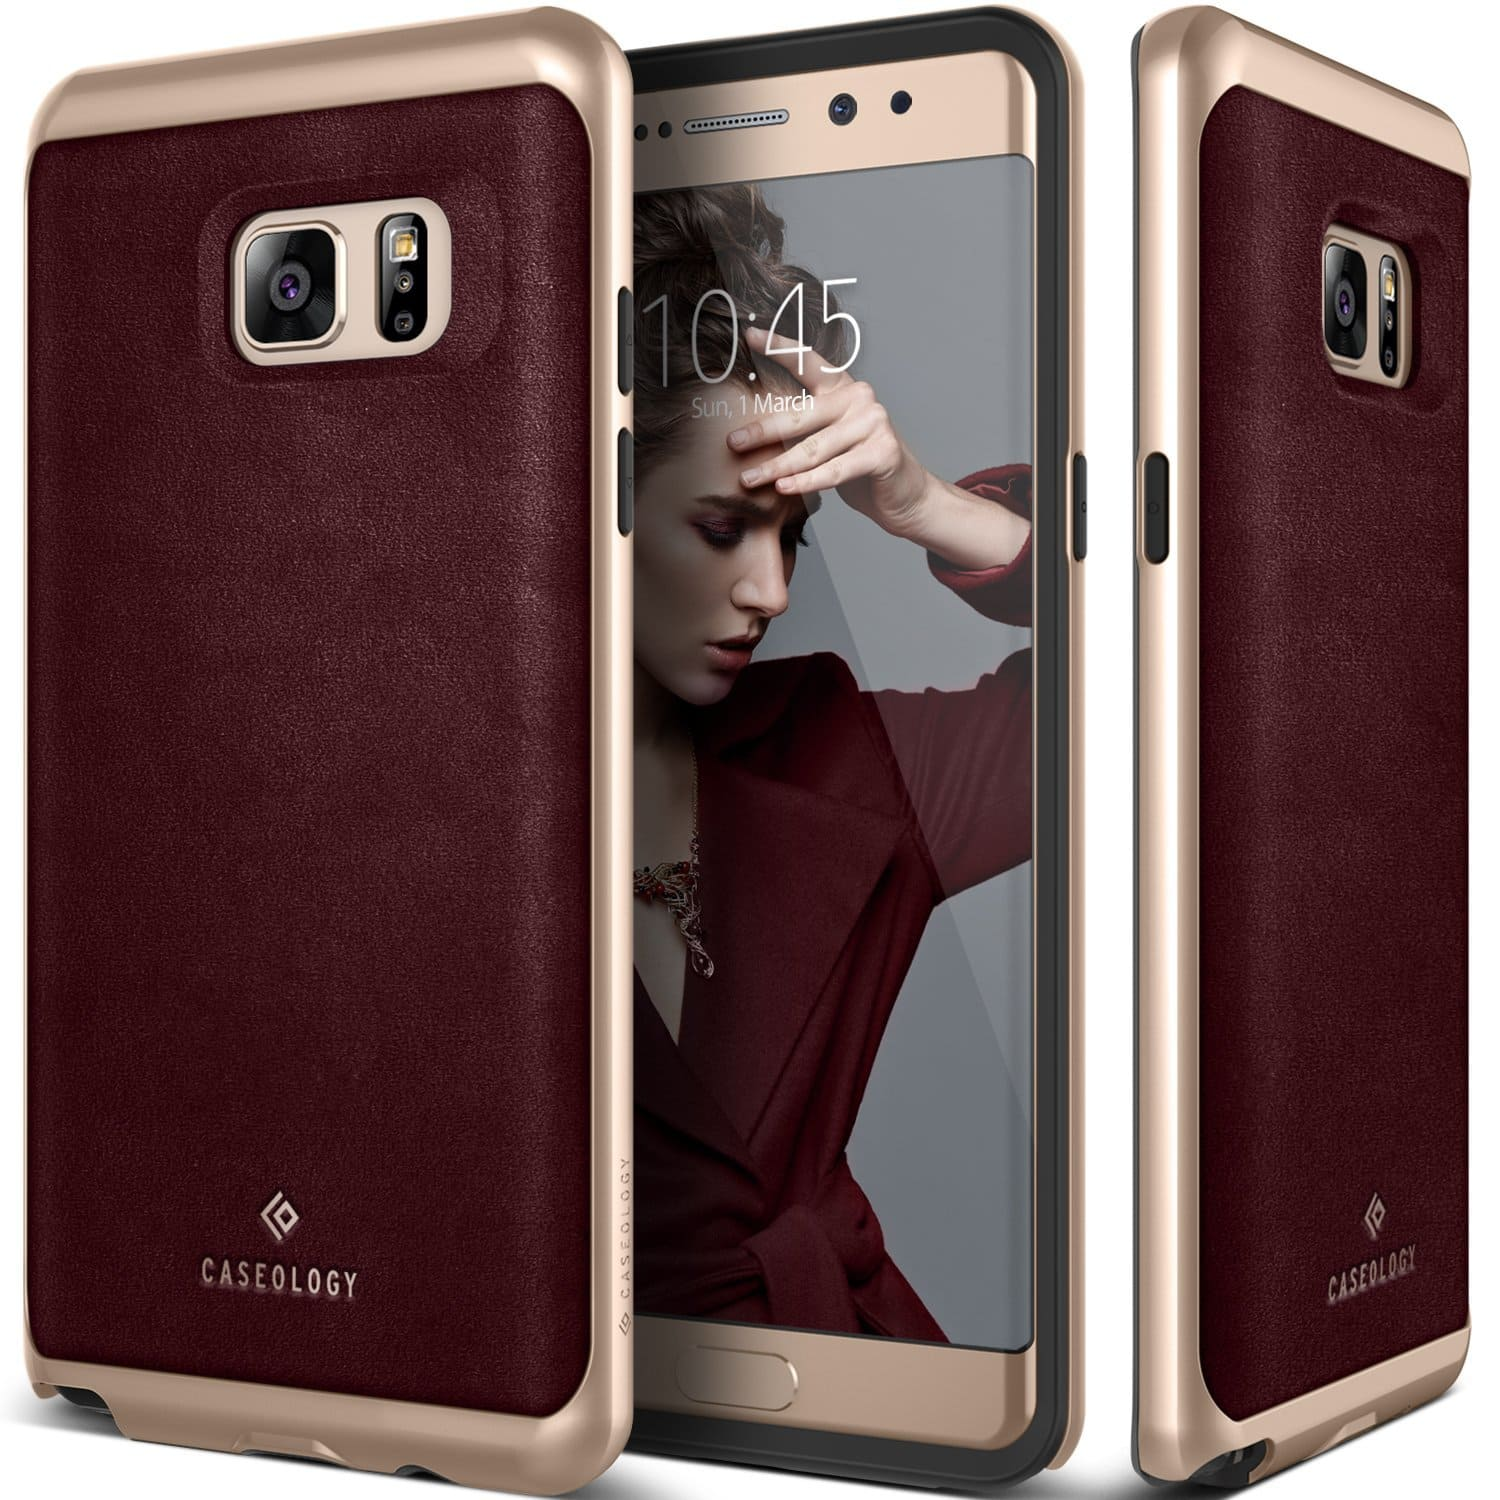 Caseology Cases for Galaxy S7/Note 7, iPhone SE or LG G5  from $4 + Free Shipping